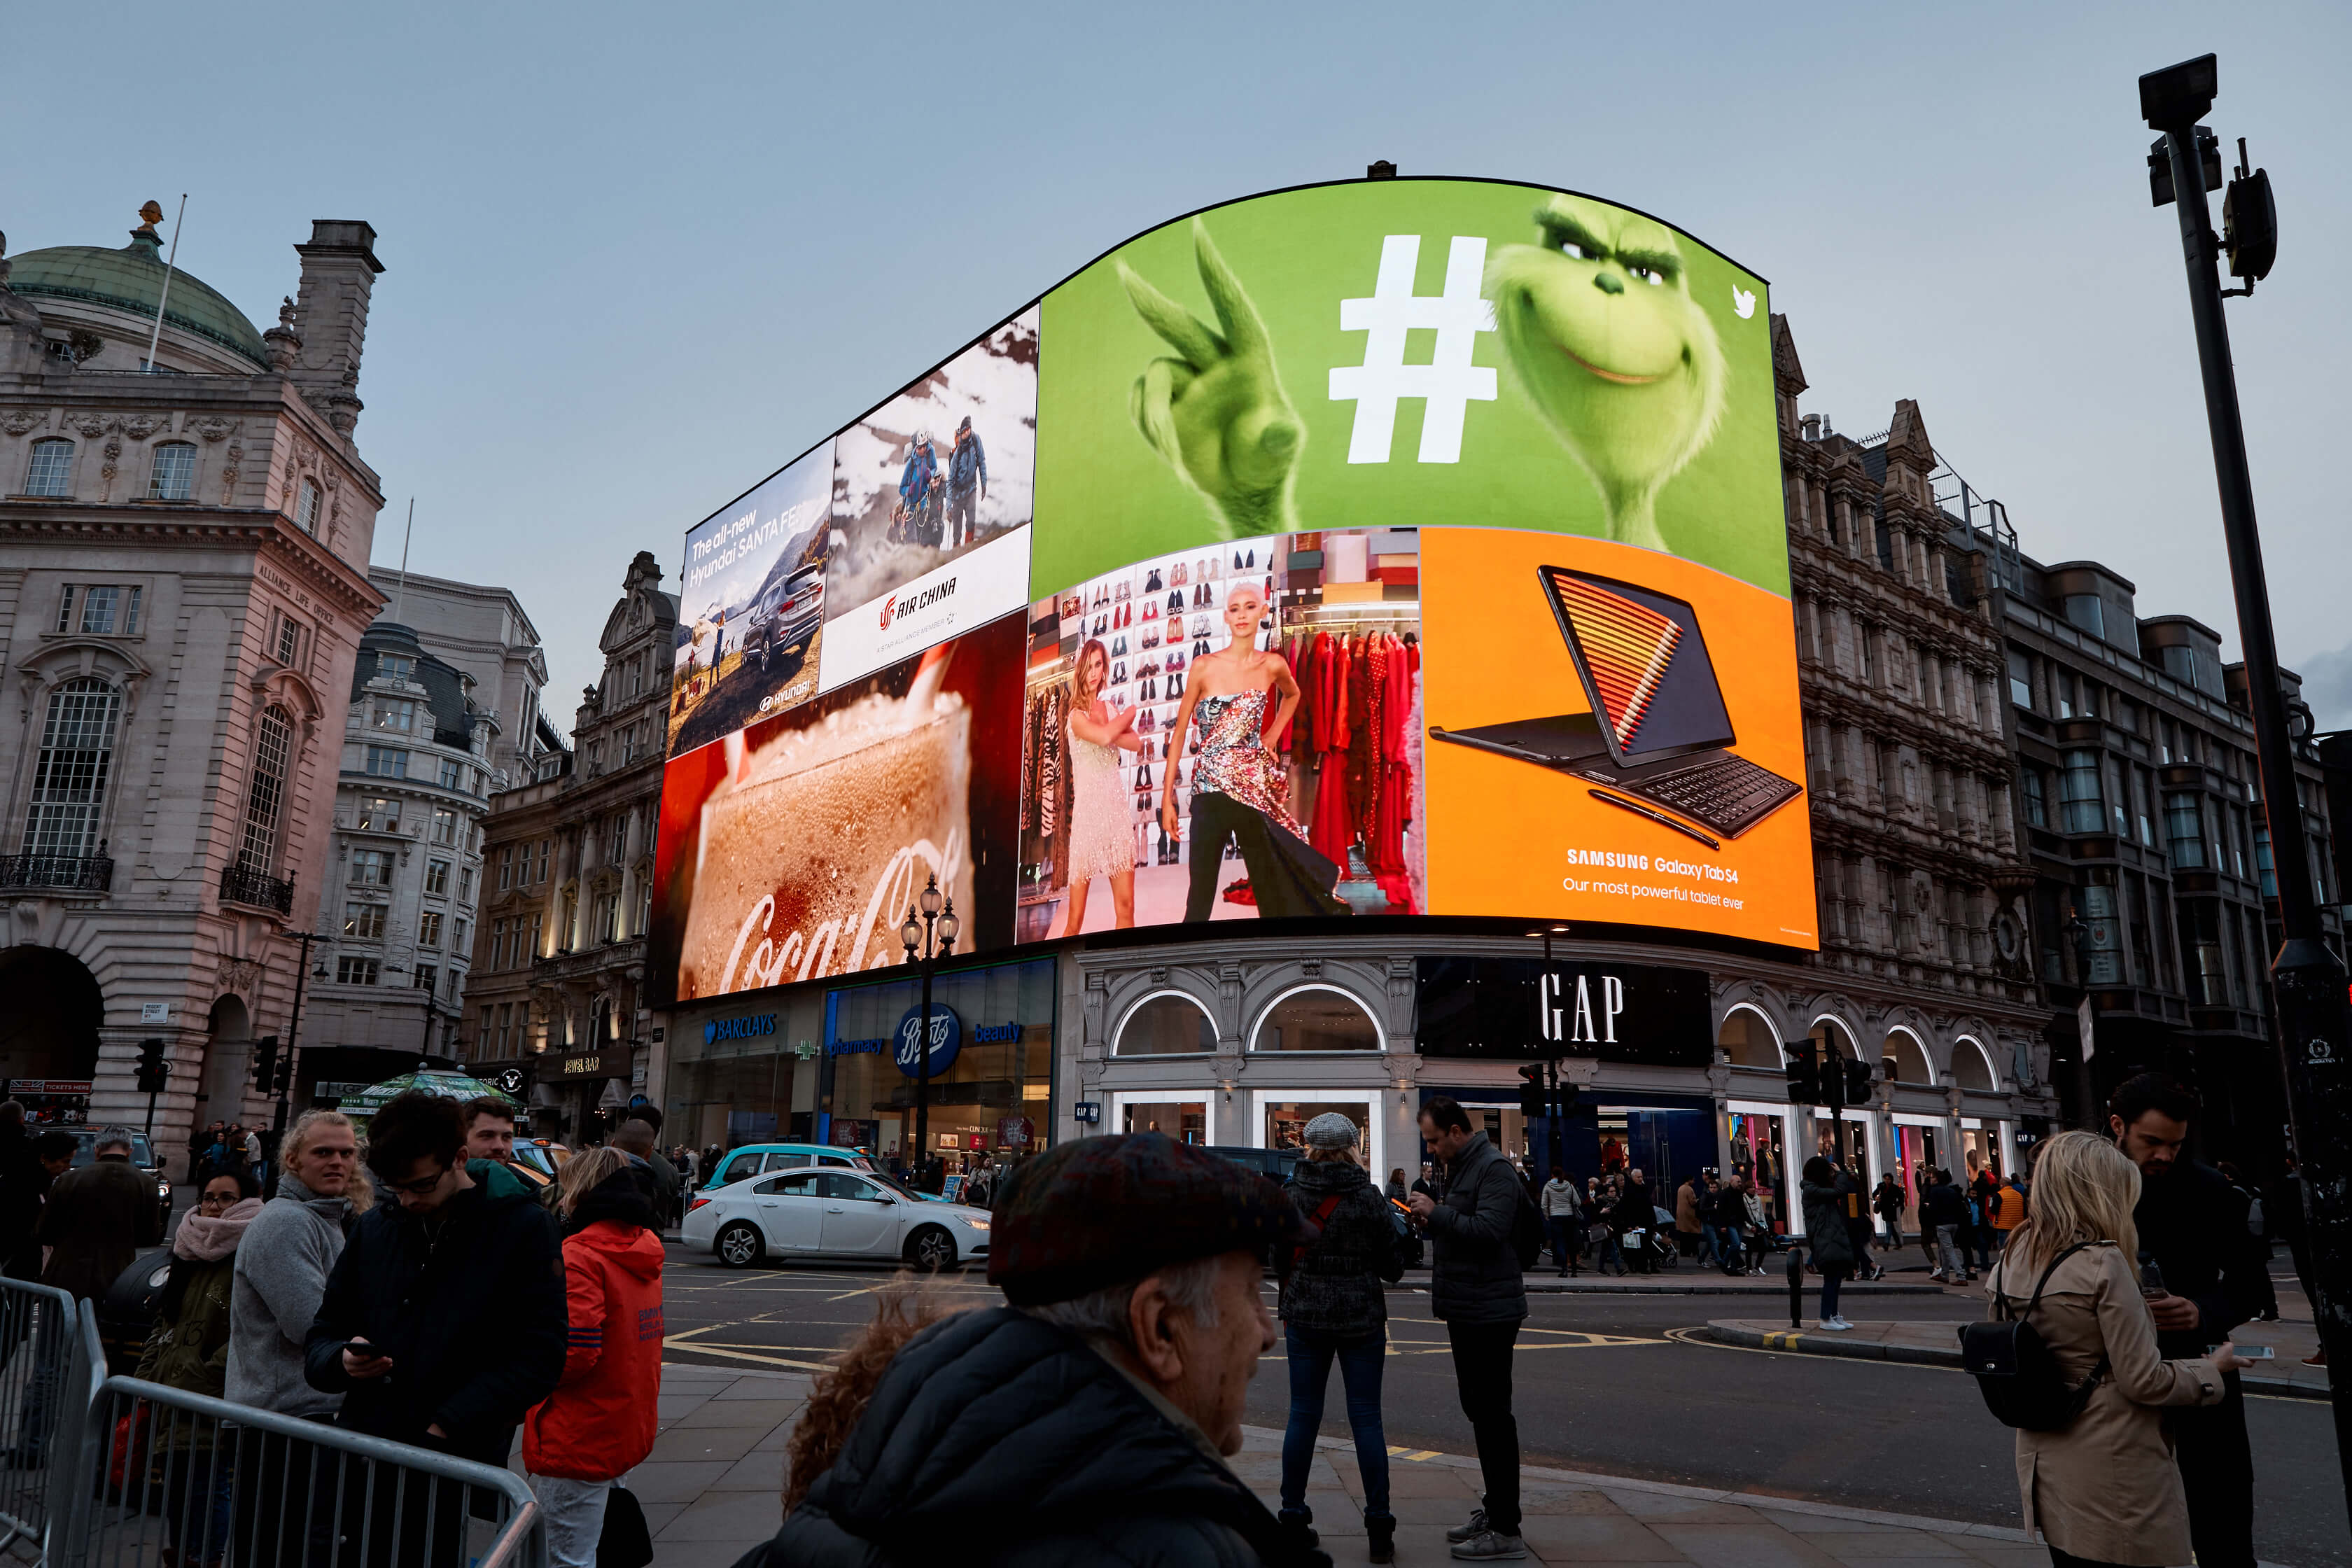 02_20181029_Twitter_Piccadilly_Lights_1633